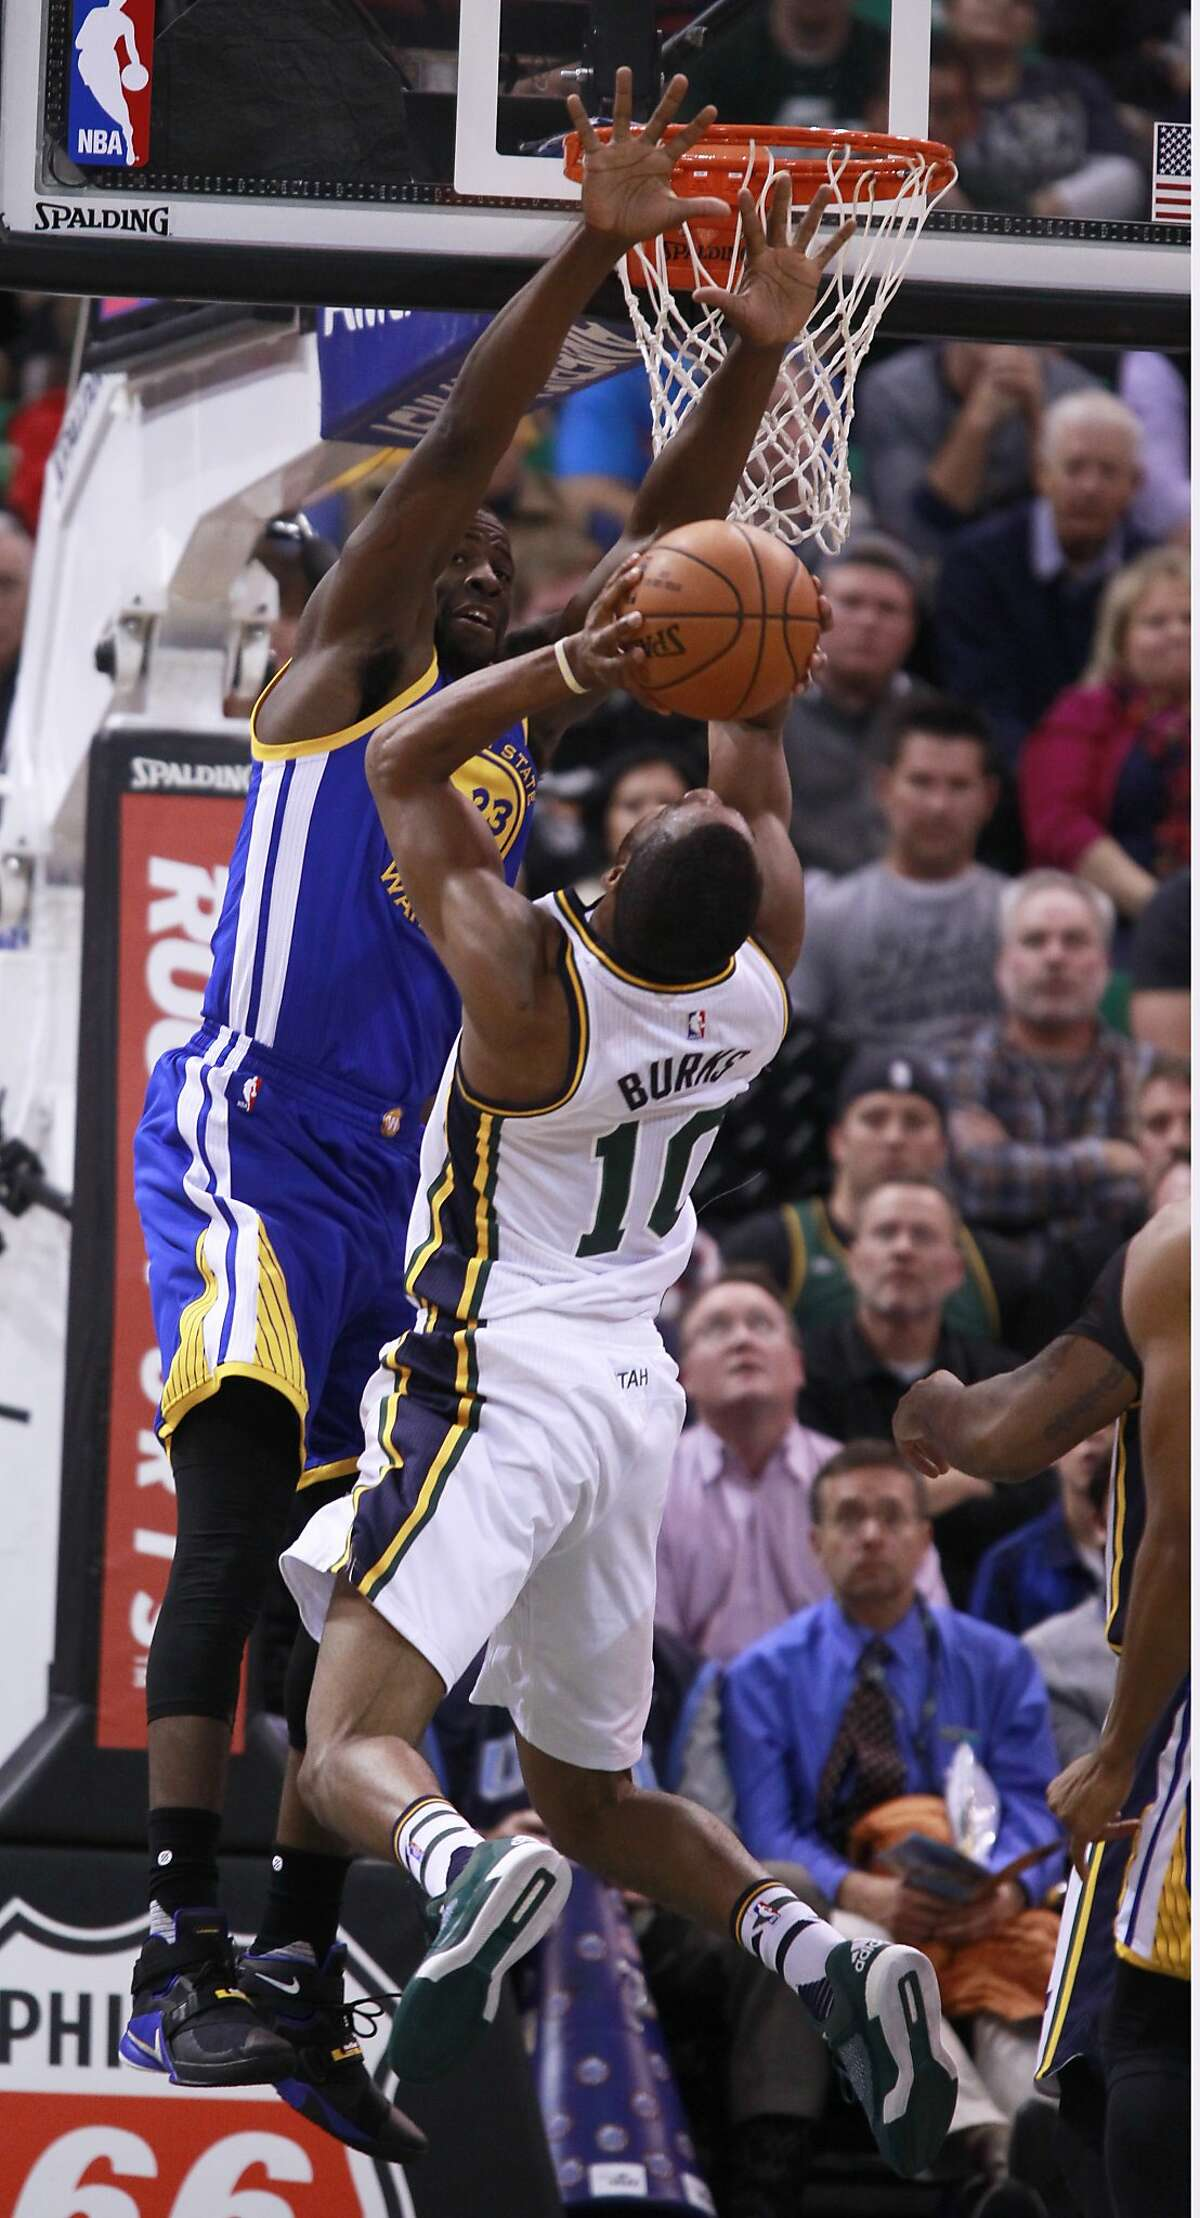 Guard Alec Burks #10 of the Utah Jazz tries to shoot over forward Draymond Green #23 of the Golden State Warriors during the first half of an NBA game November 30, 2014 at Vivint Smart Home Arena in Salt Lake City, Utah.